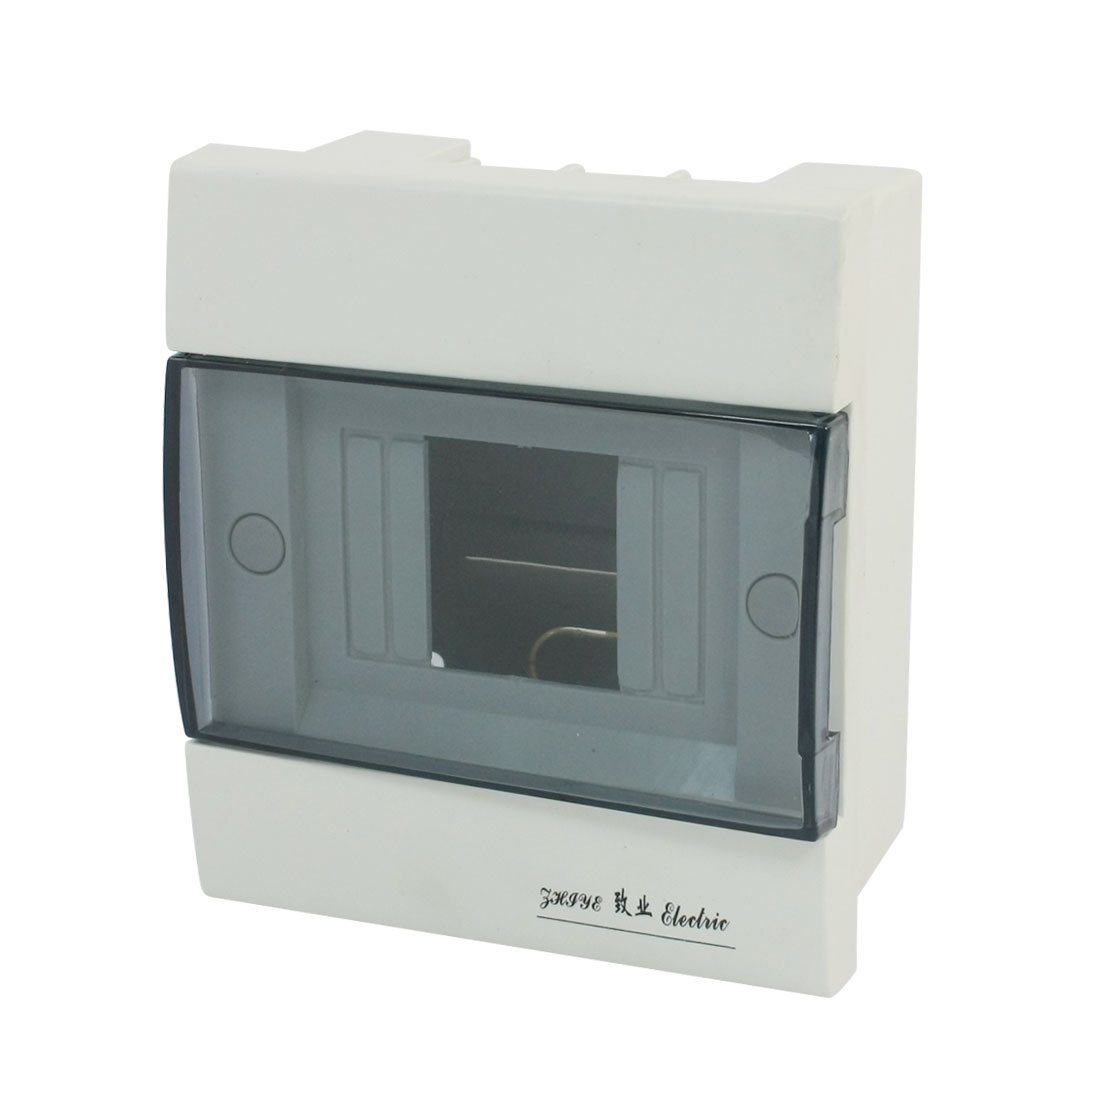 Bathroom Electric Leakage Switch Protection Box Gray 15 x 13 x 8cm